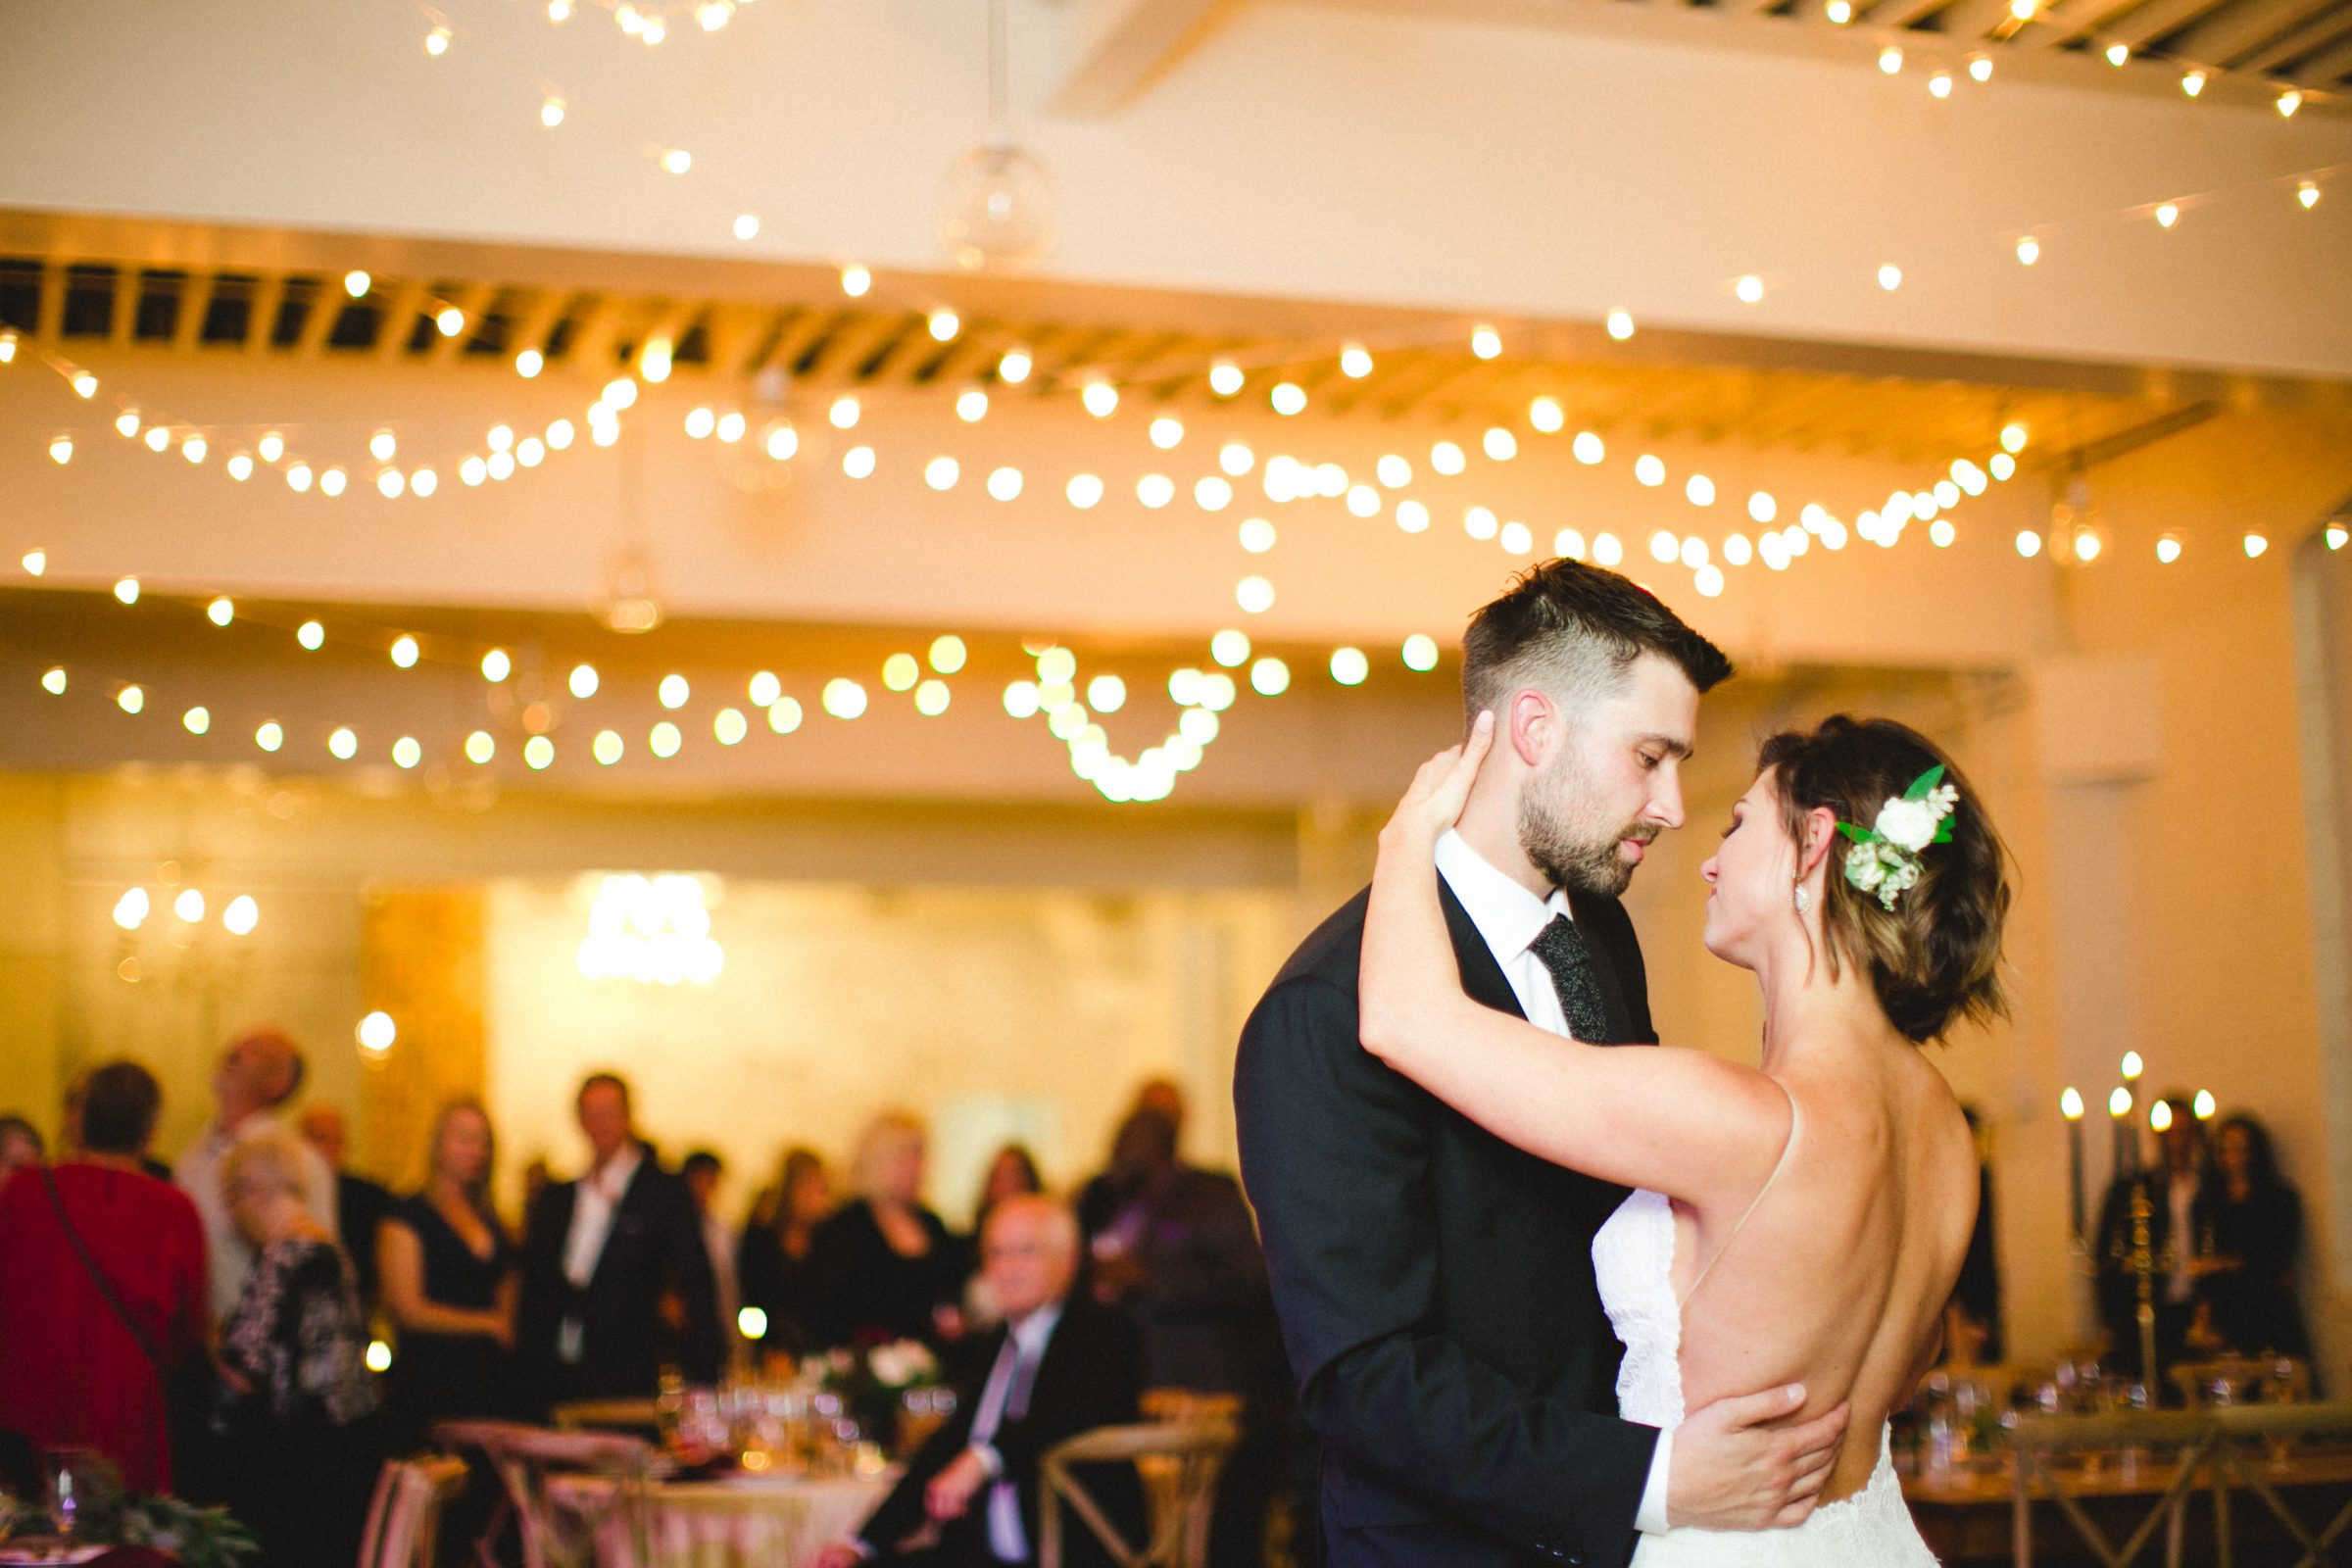 First dance songs at wedding